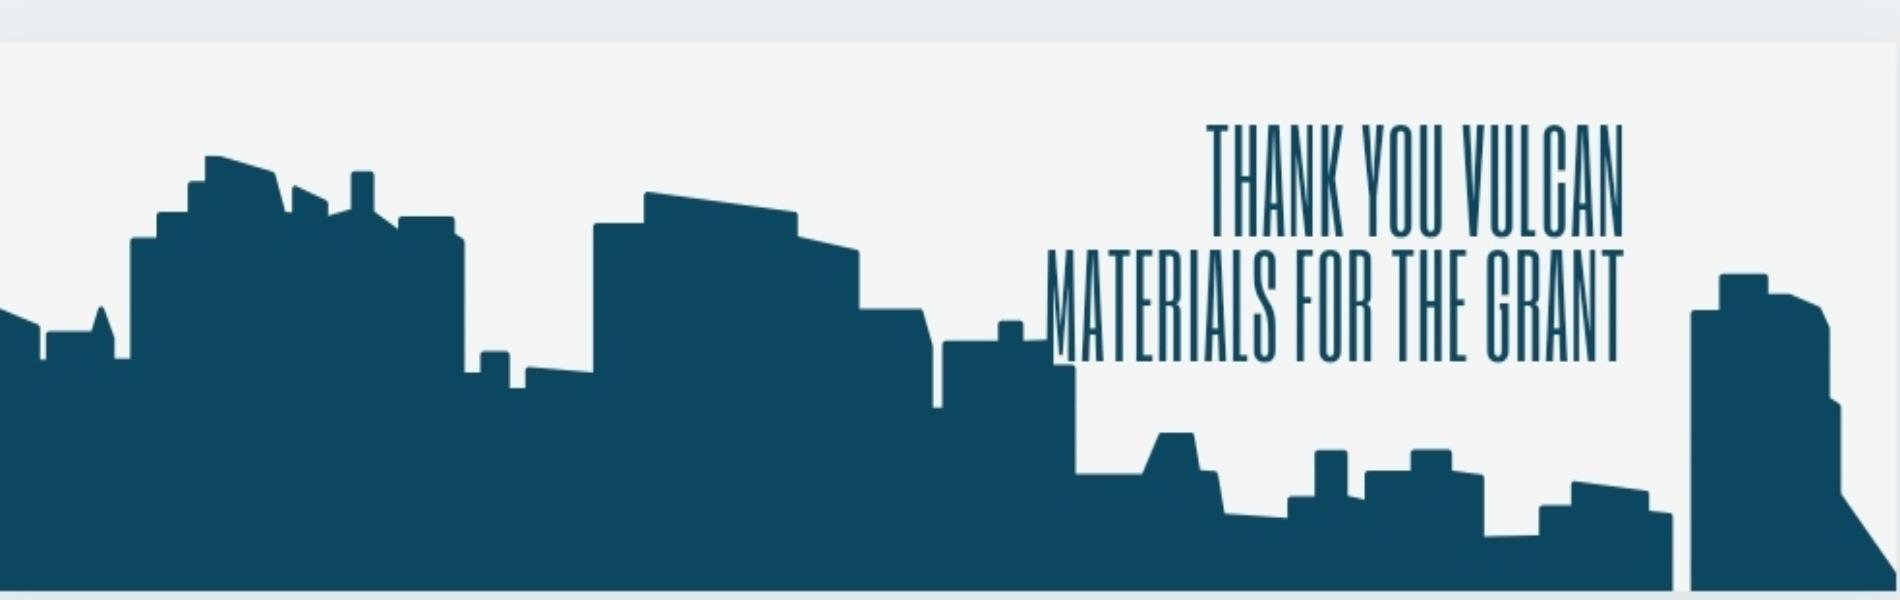 Thank you Vulcan materials for the grant